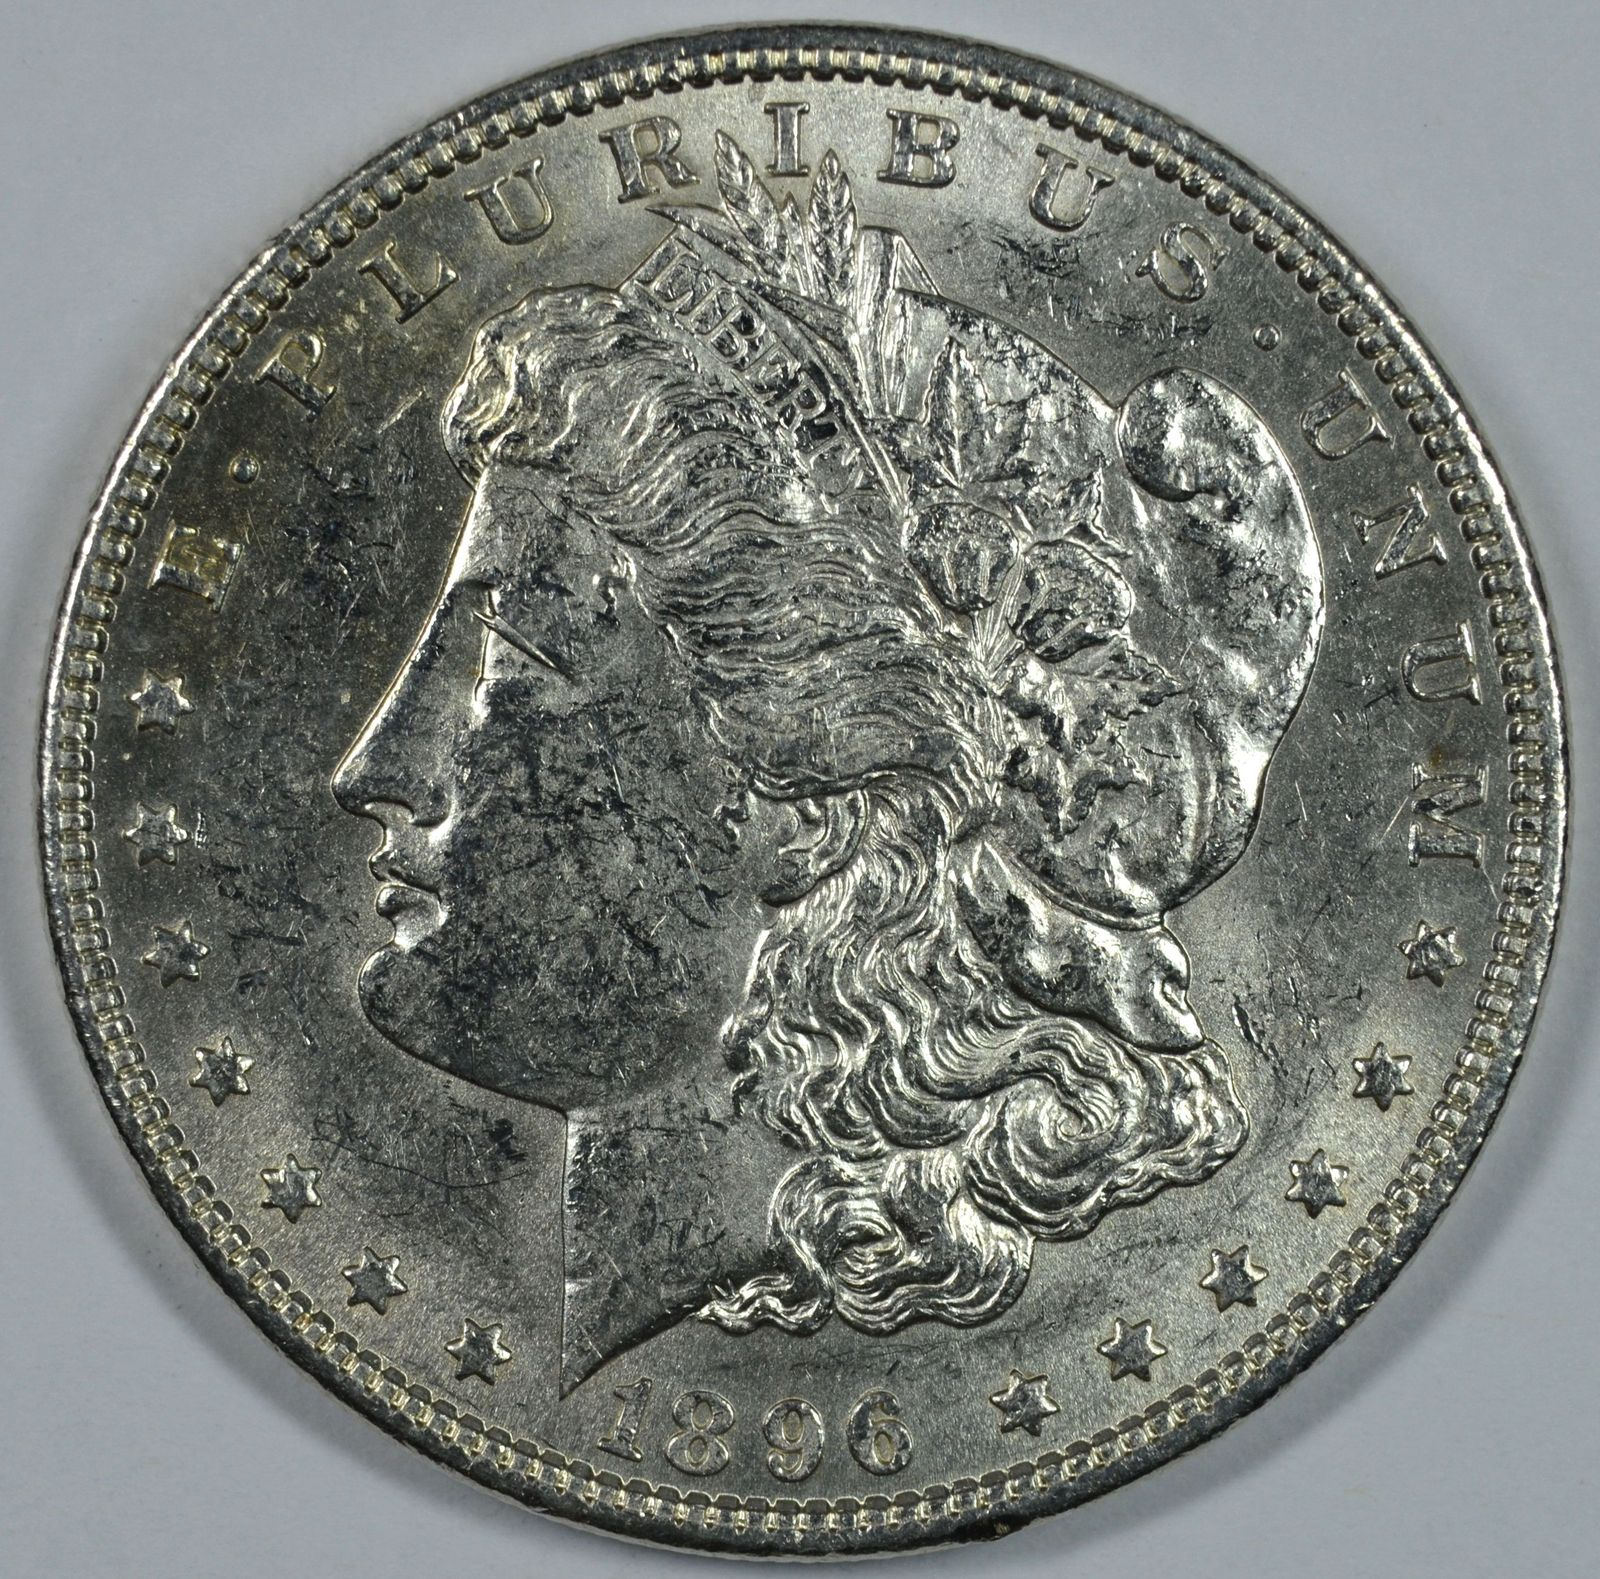 Primary image for 1896 P Morgan circulated silver dollar XF details